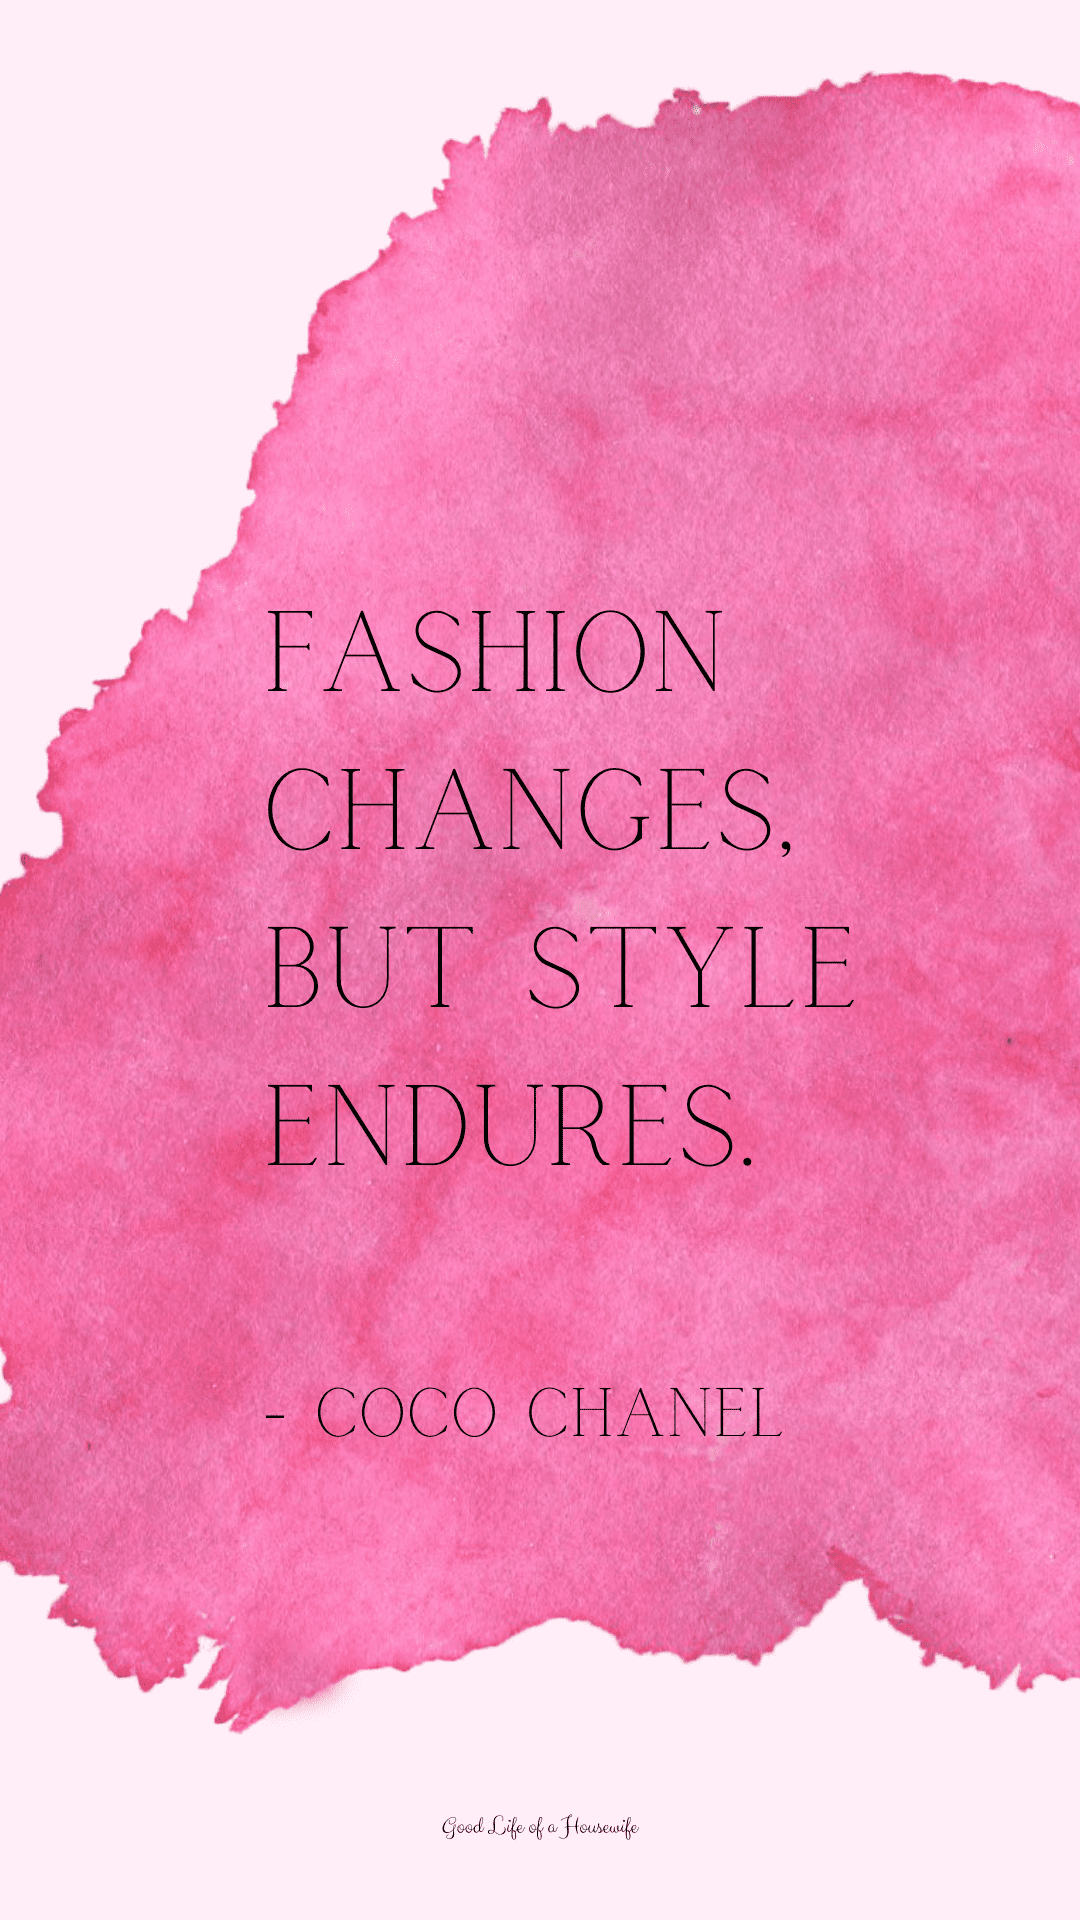 Coco Chanel inspired iPhone background - Good Life of a Housewife